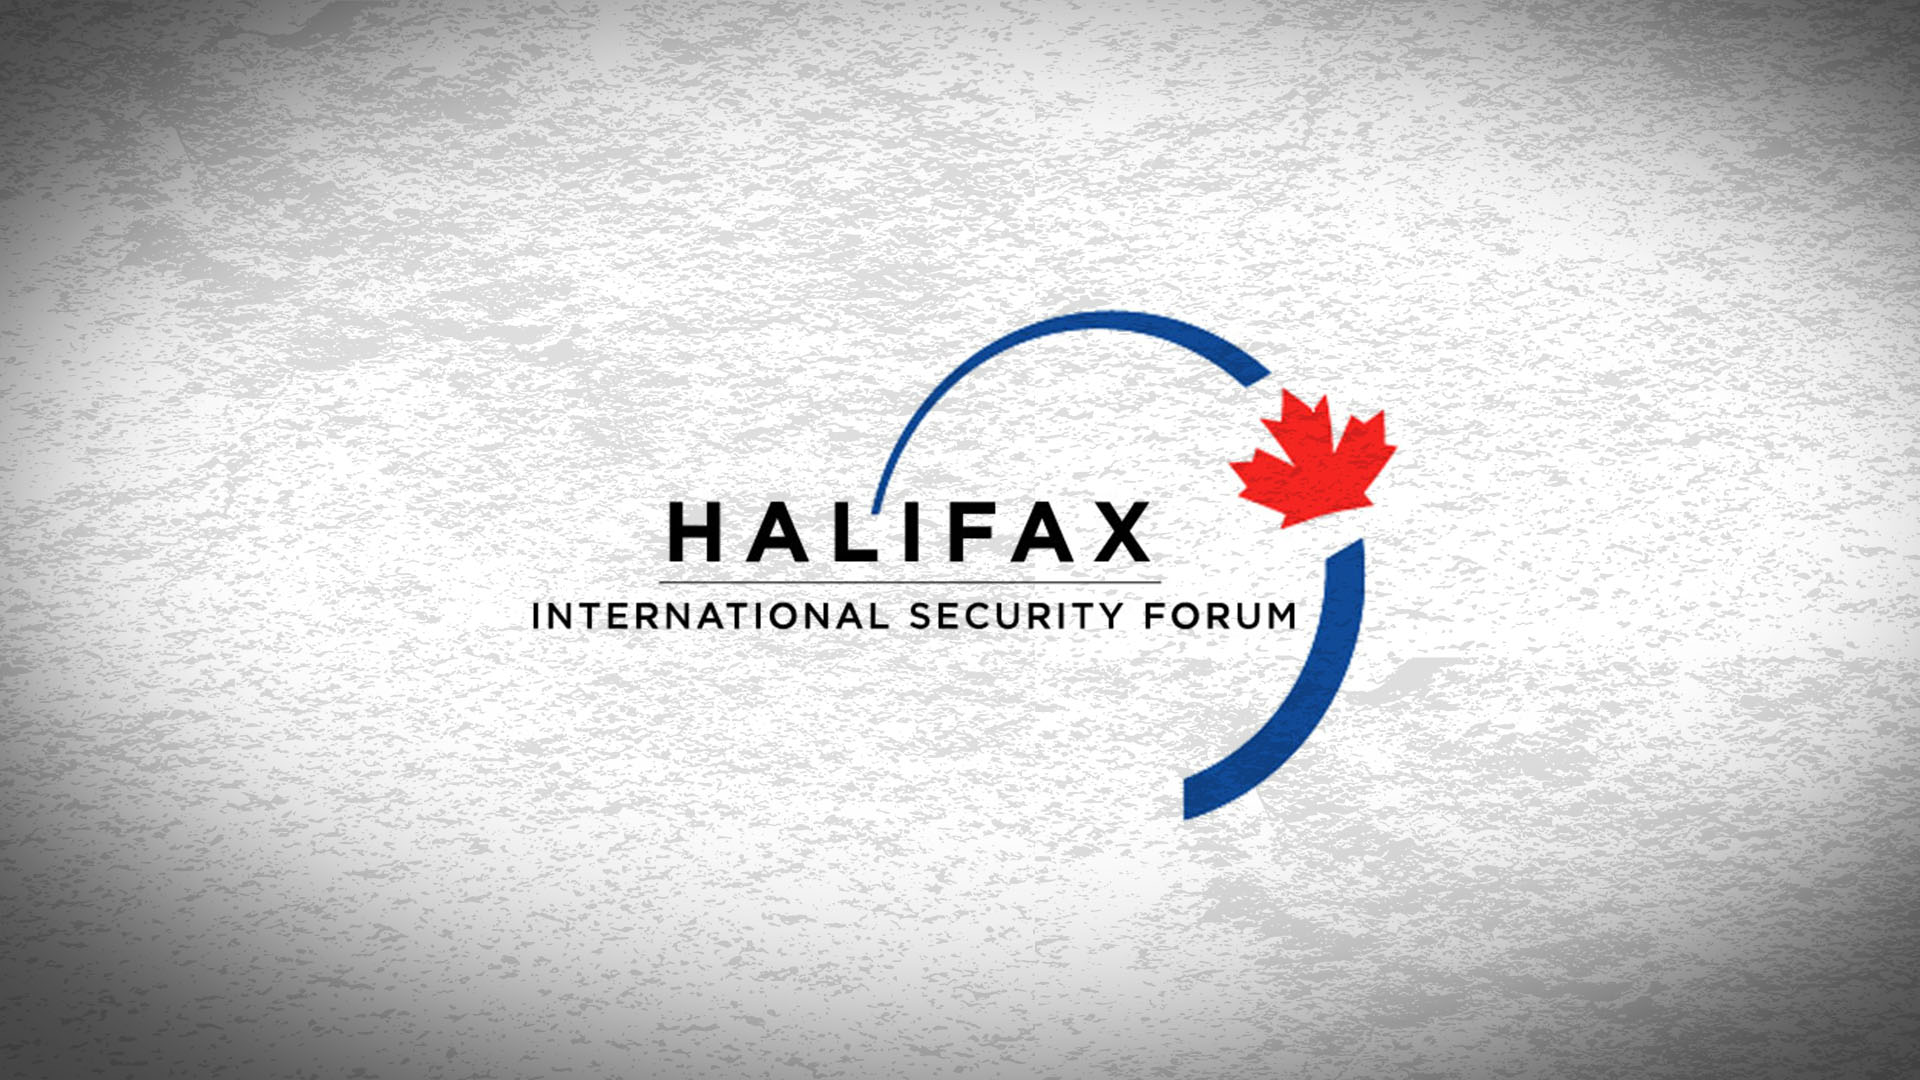 Feds: No defunding talks with Halifax Security Forum over Taiwan prize